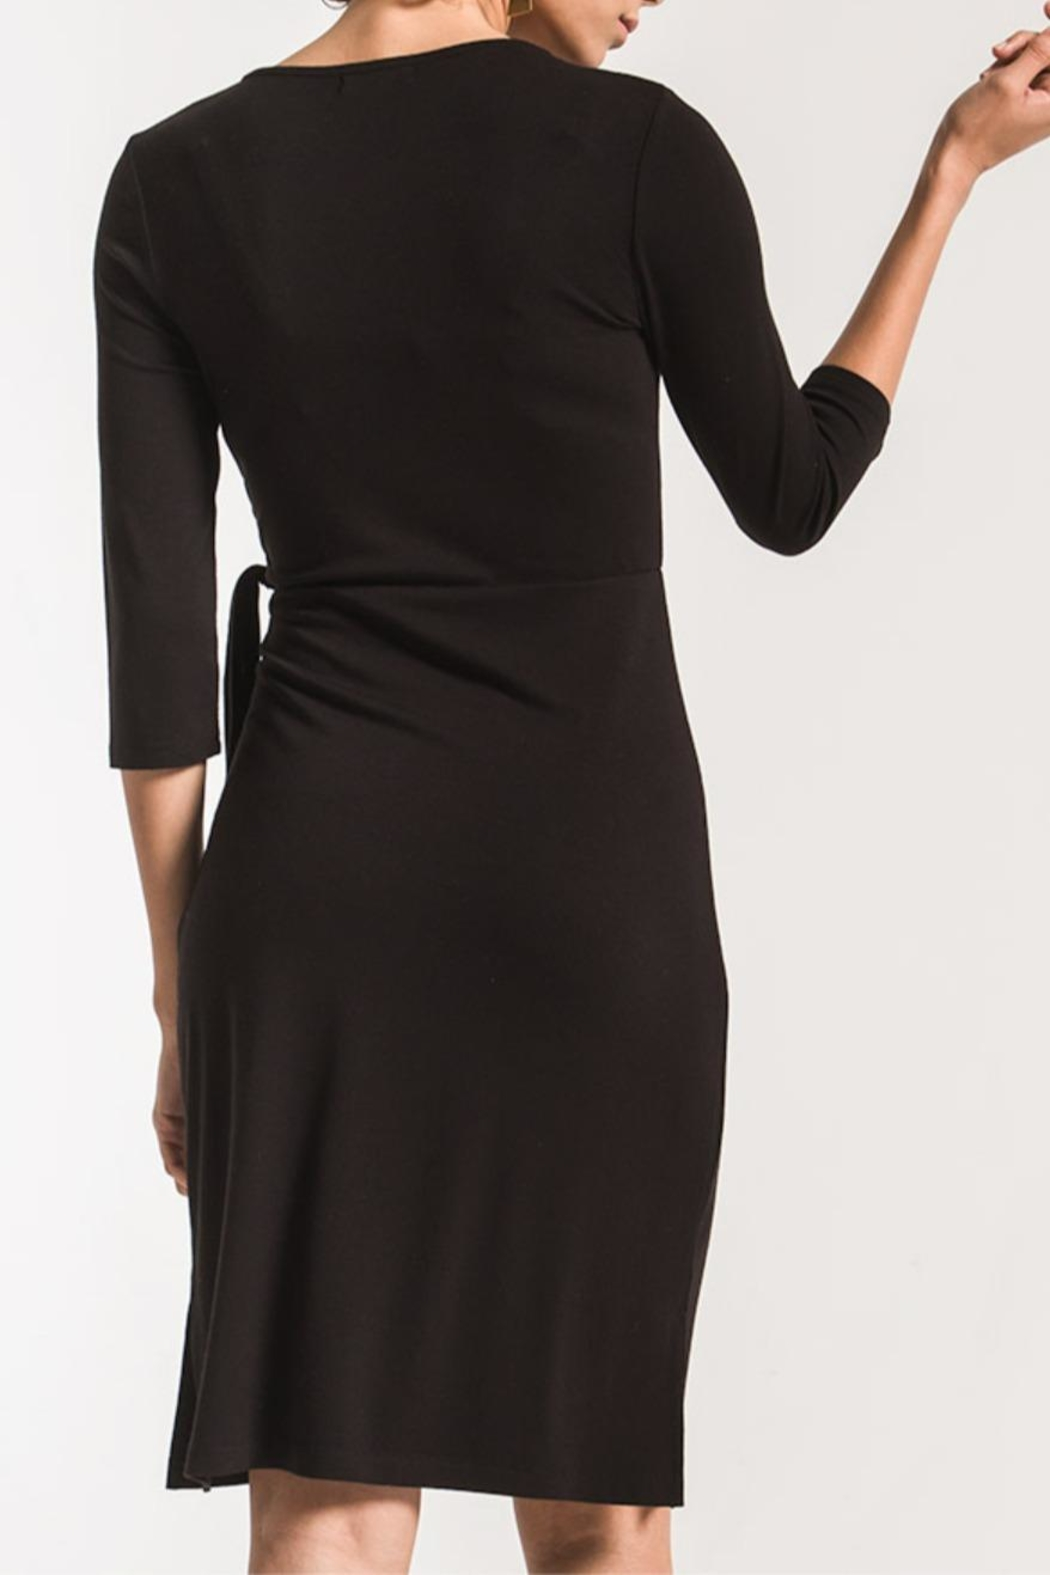 z supply Dahlia Wrap Dress - Front Full Image